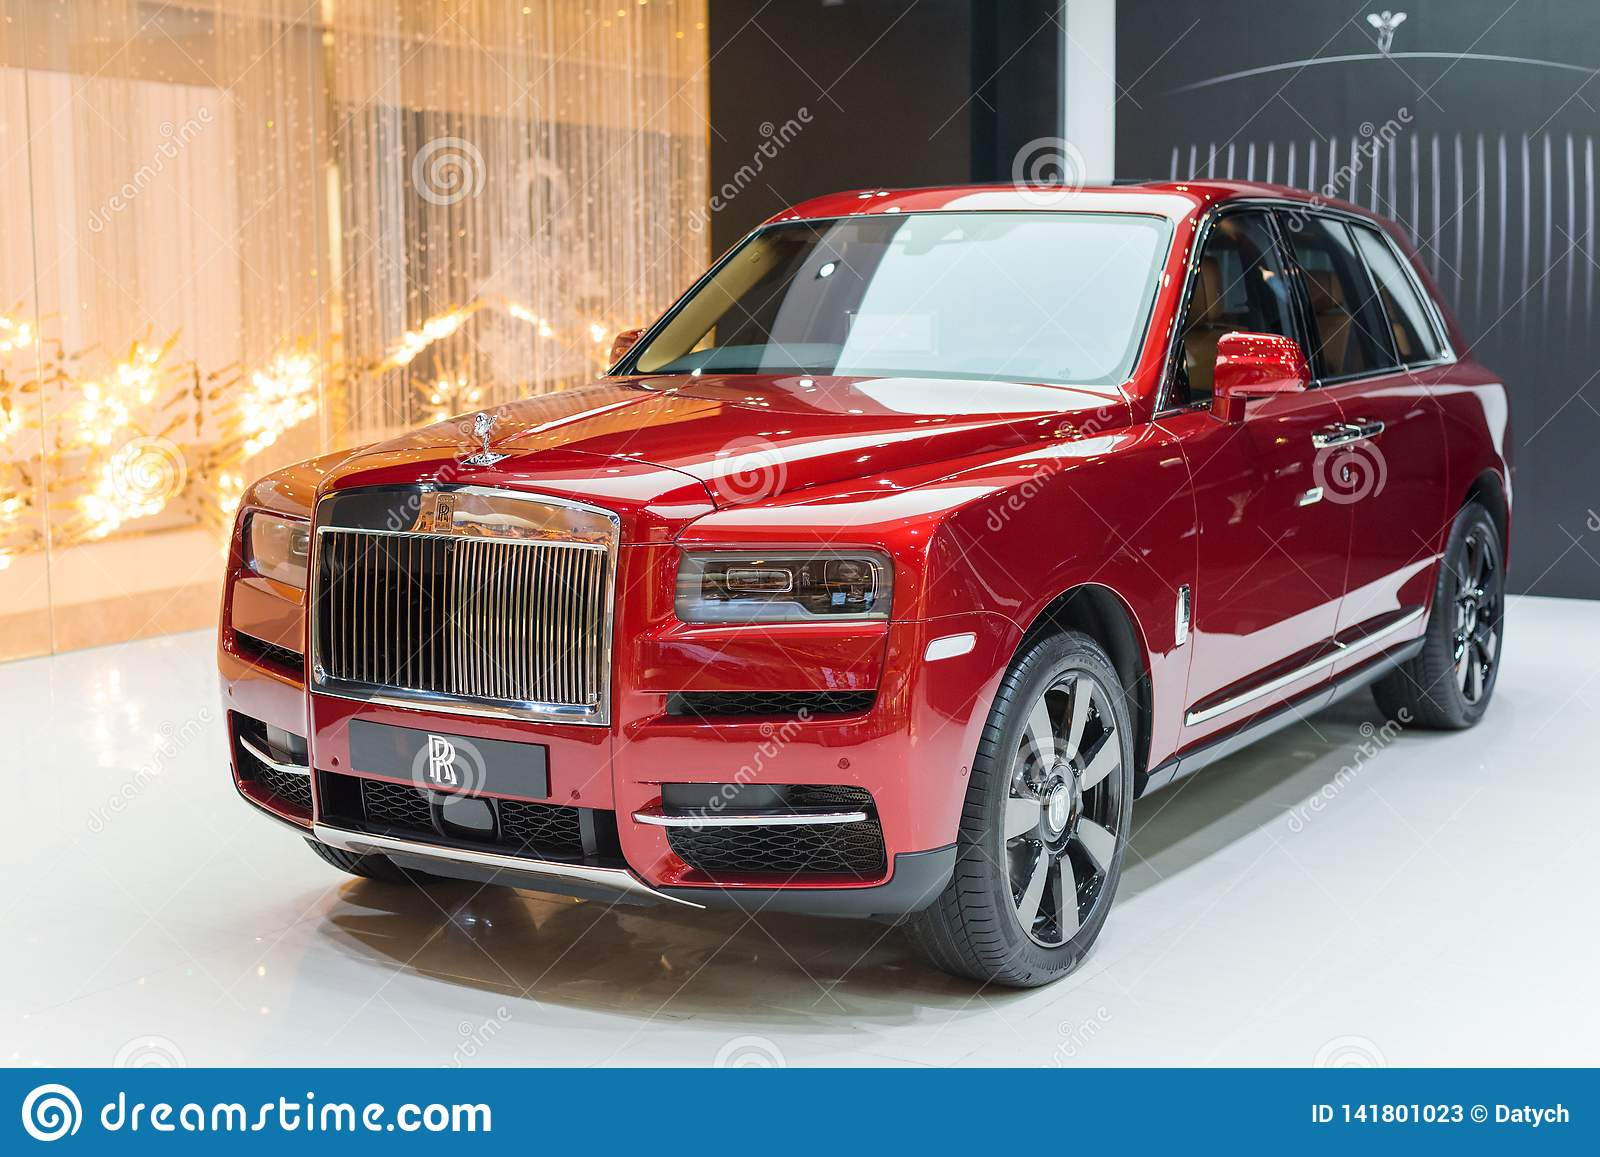 Rolls Royce Cullinan At Iconsiam Editorial Stock Photo Image Of European Fullsize 141801023